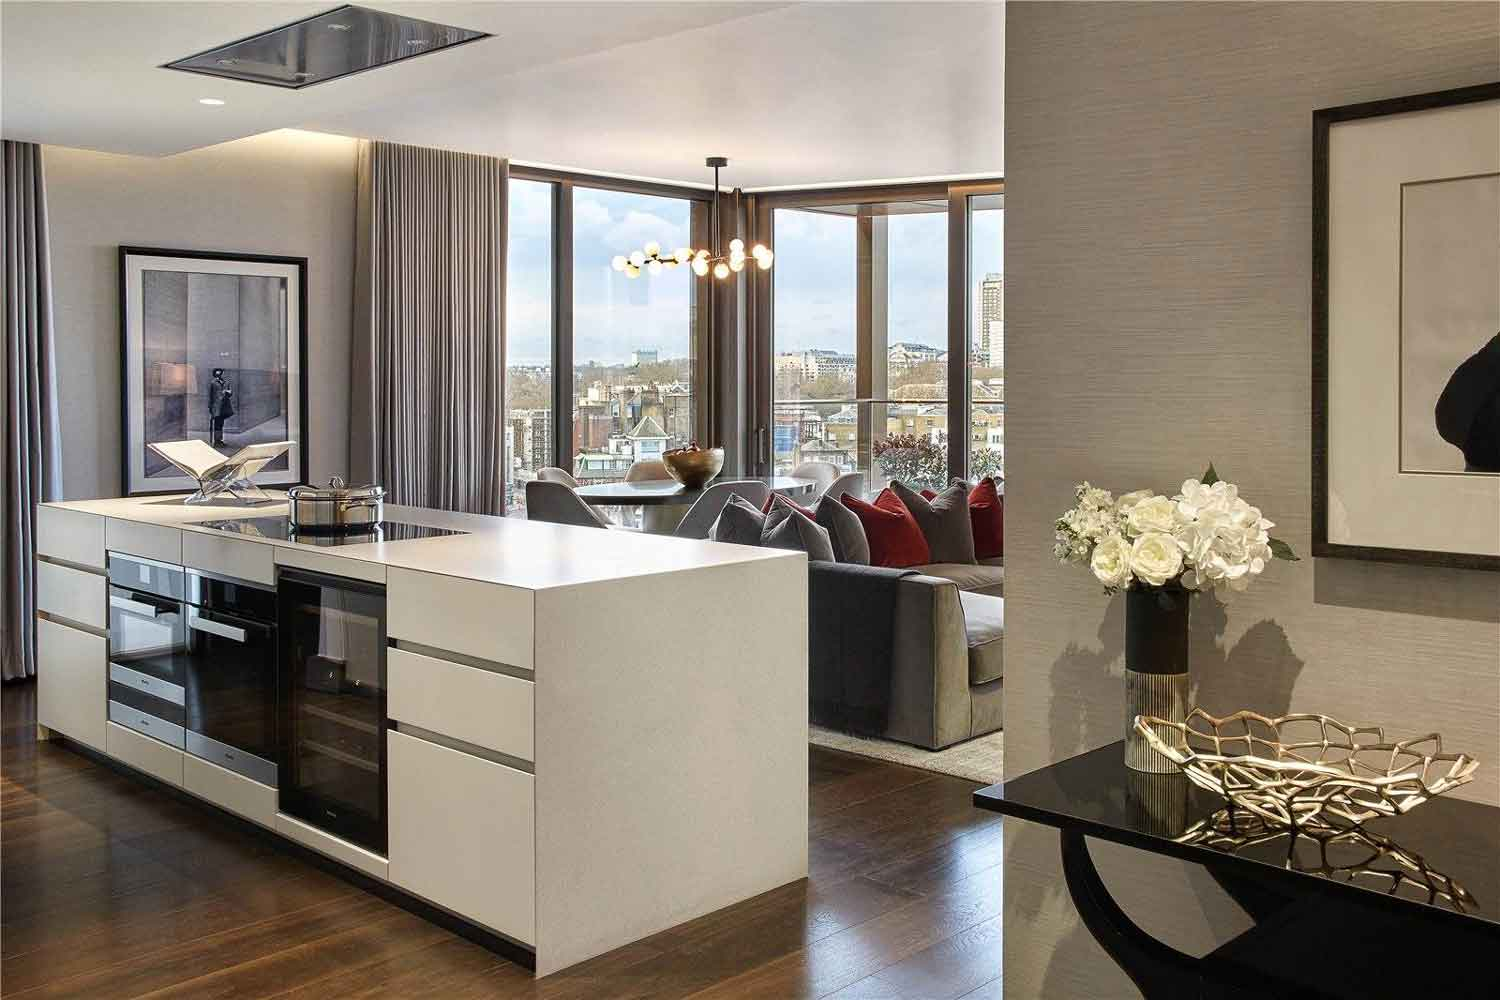 This luxurious three-bedroom apartment at 801 Kings Gate, one of London's premier residential buildings, is within five minutes' walk of the Apollo Victoria Theatre and a short taxi ride from London's famous Theatreland. The home's tastefully decorated living spaces are framed by views of Buckingham Palace and London's royal parks.